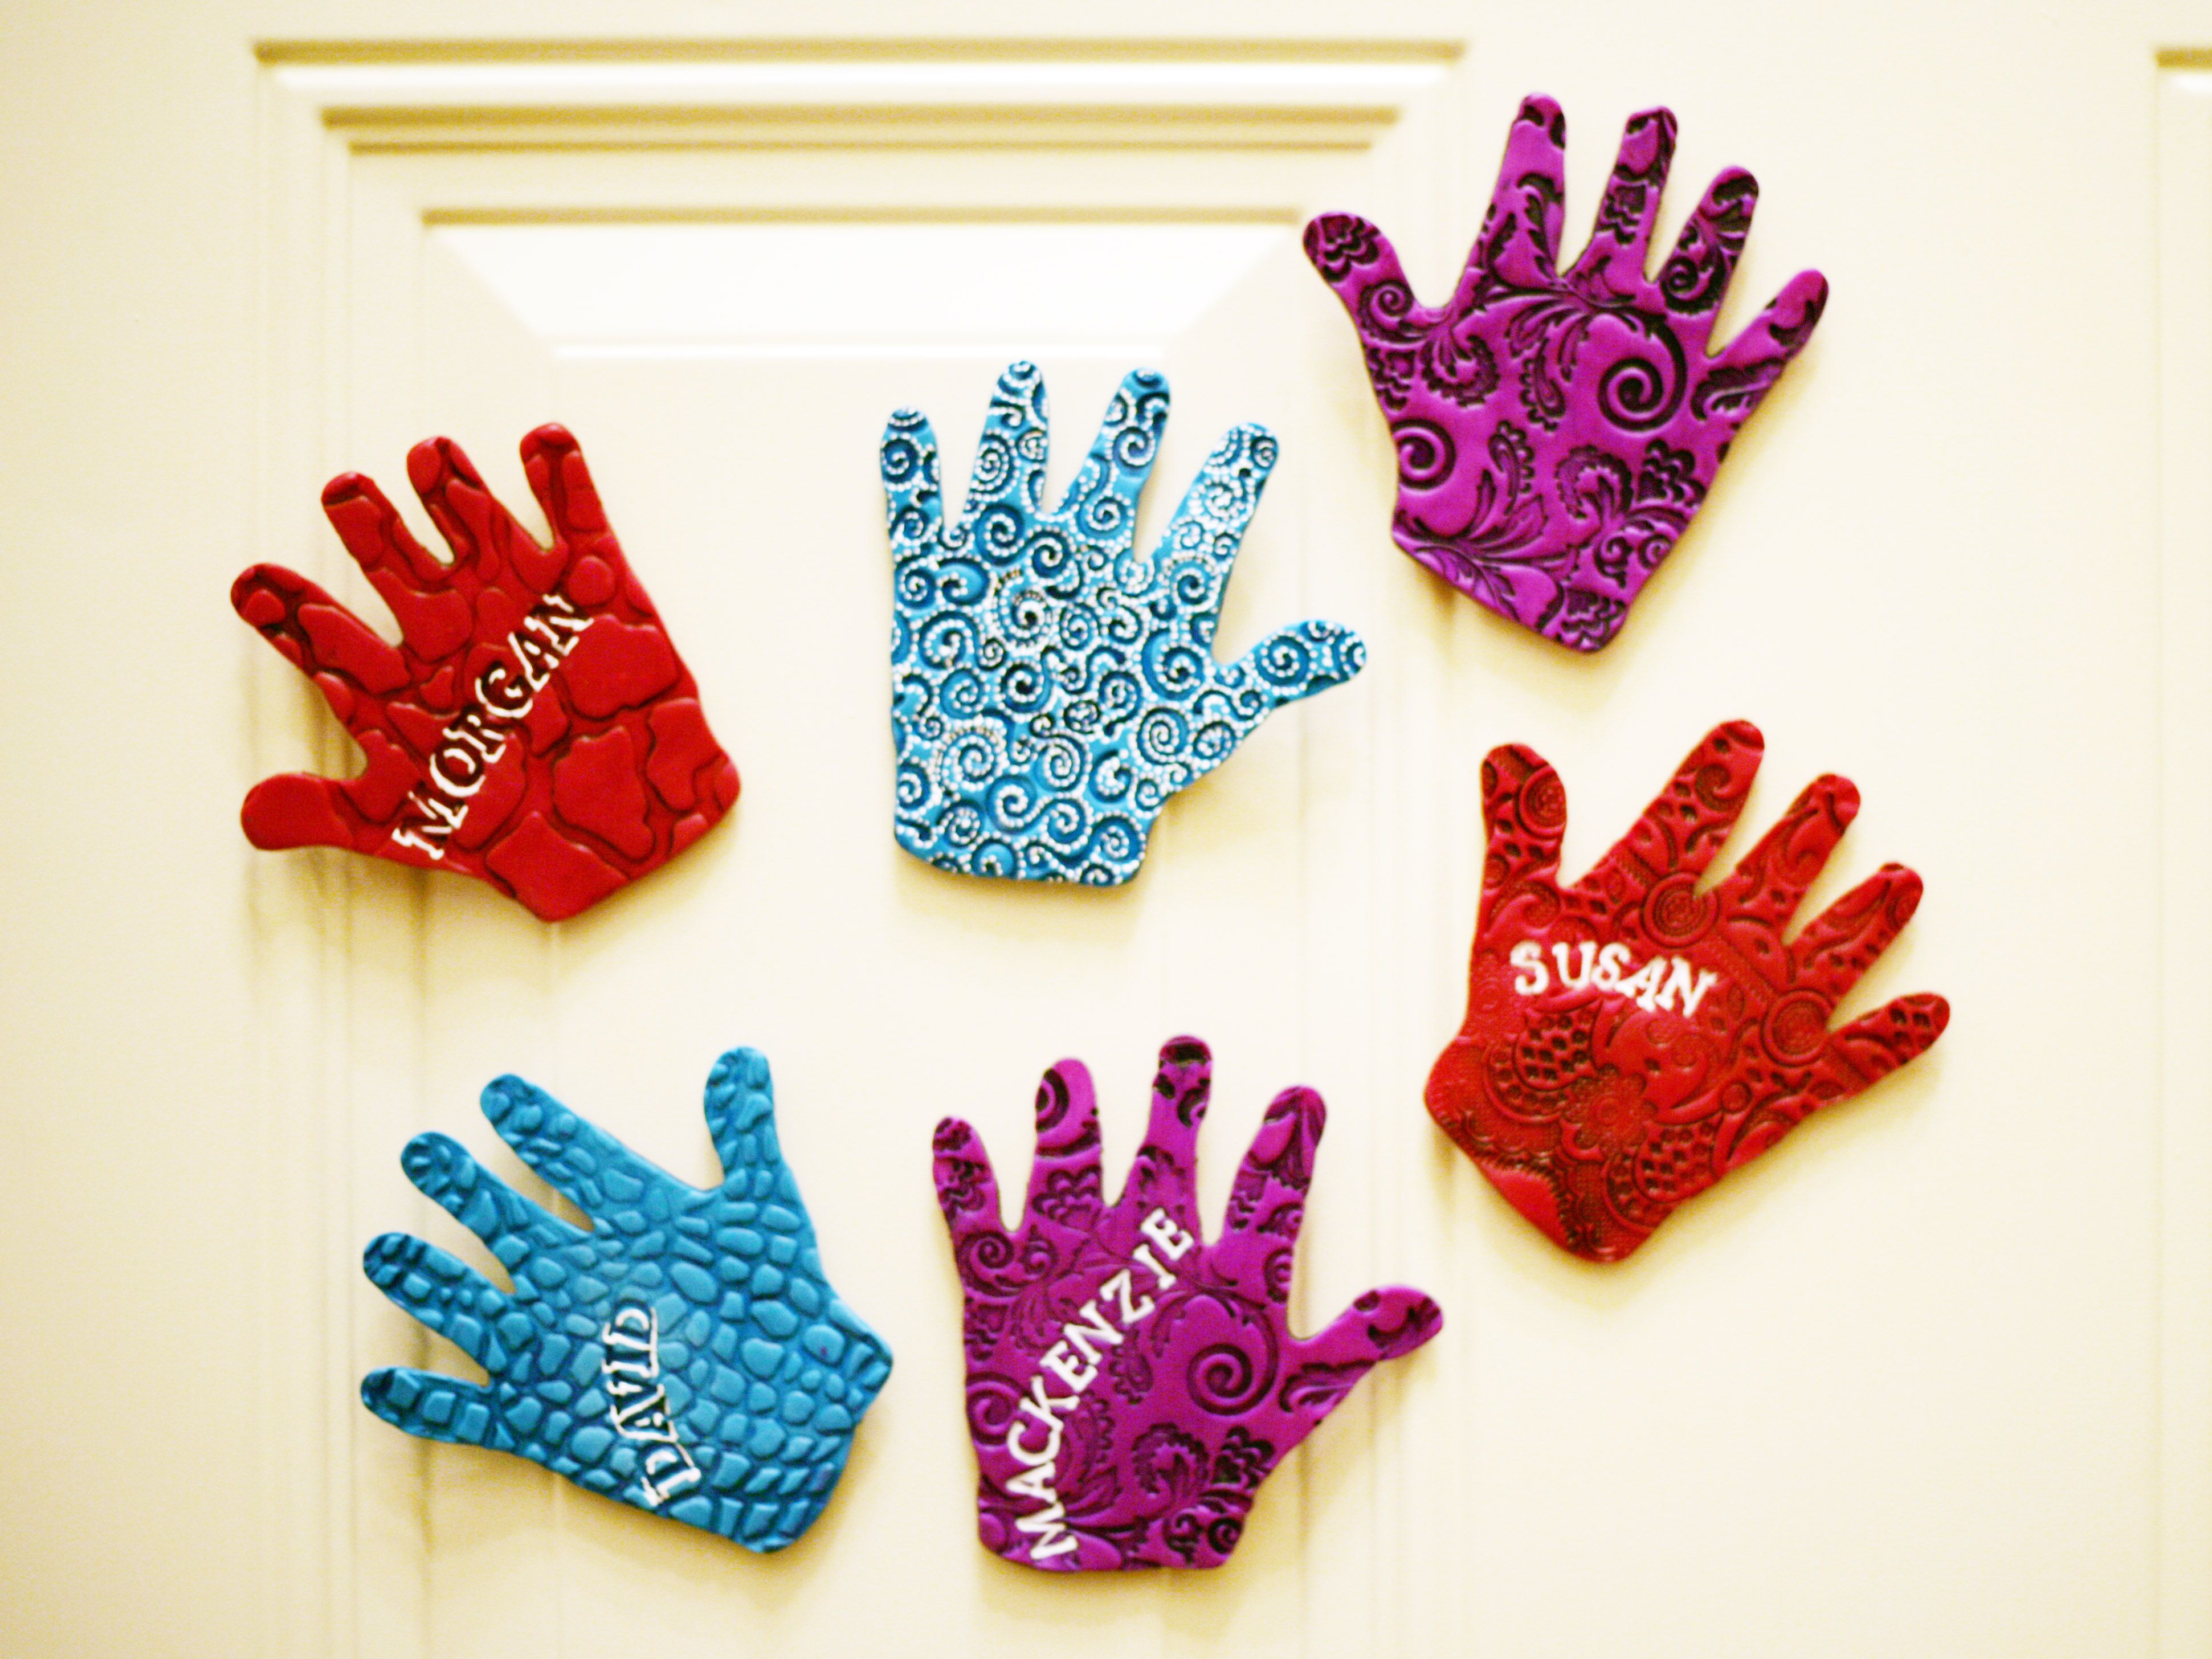 Precious Childrens Hand Magnets 12 Cute Clay Projects For Kids